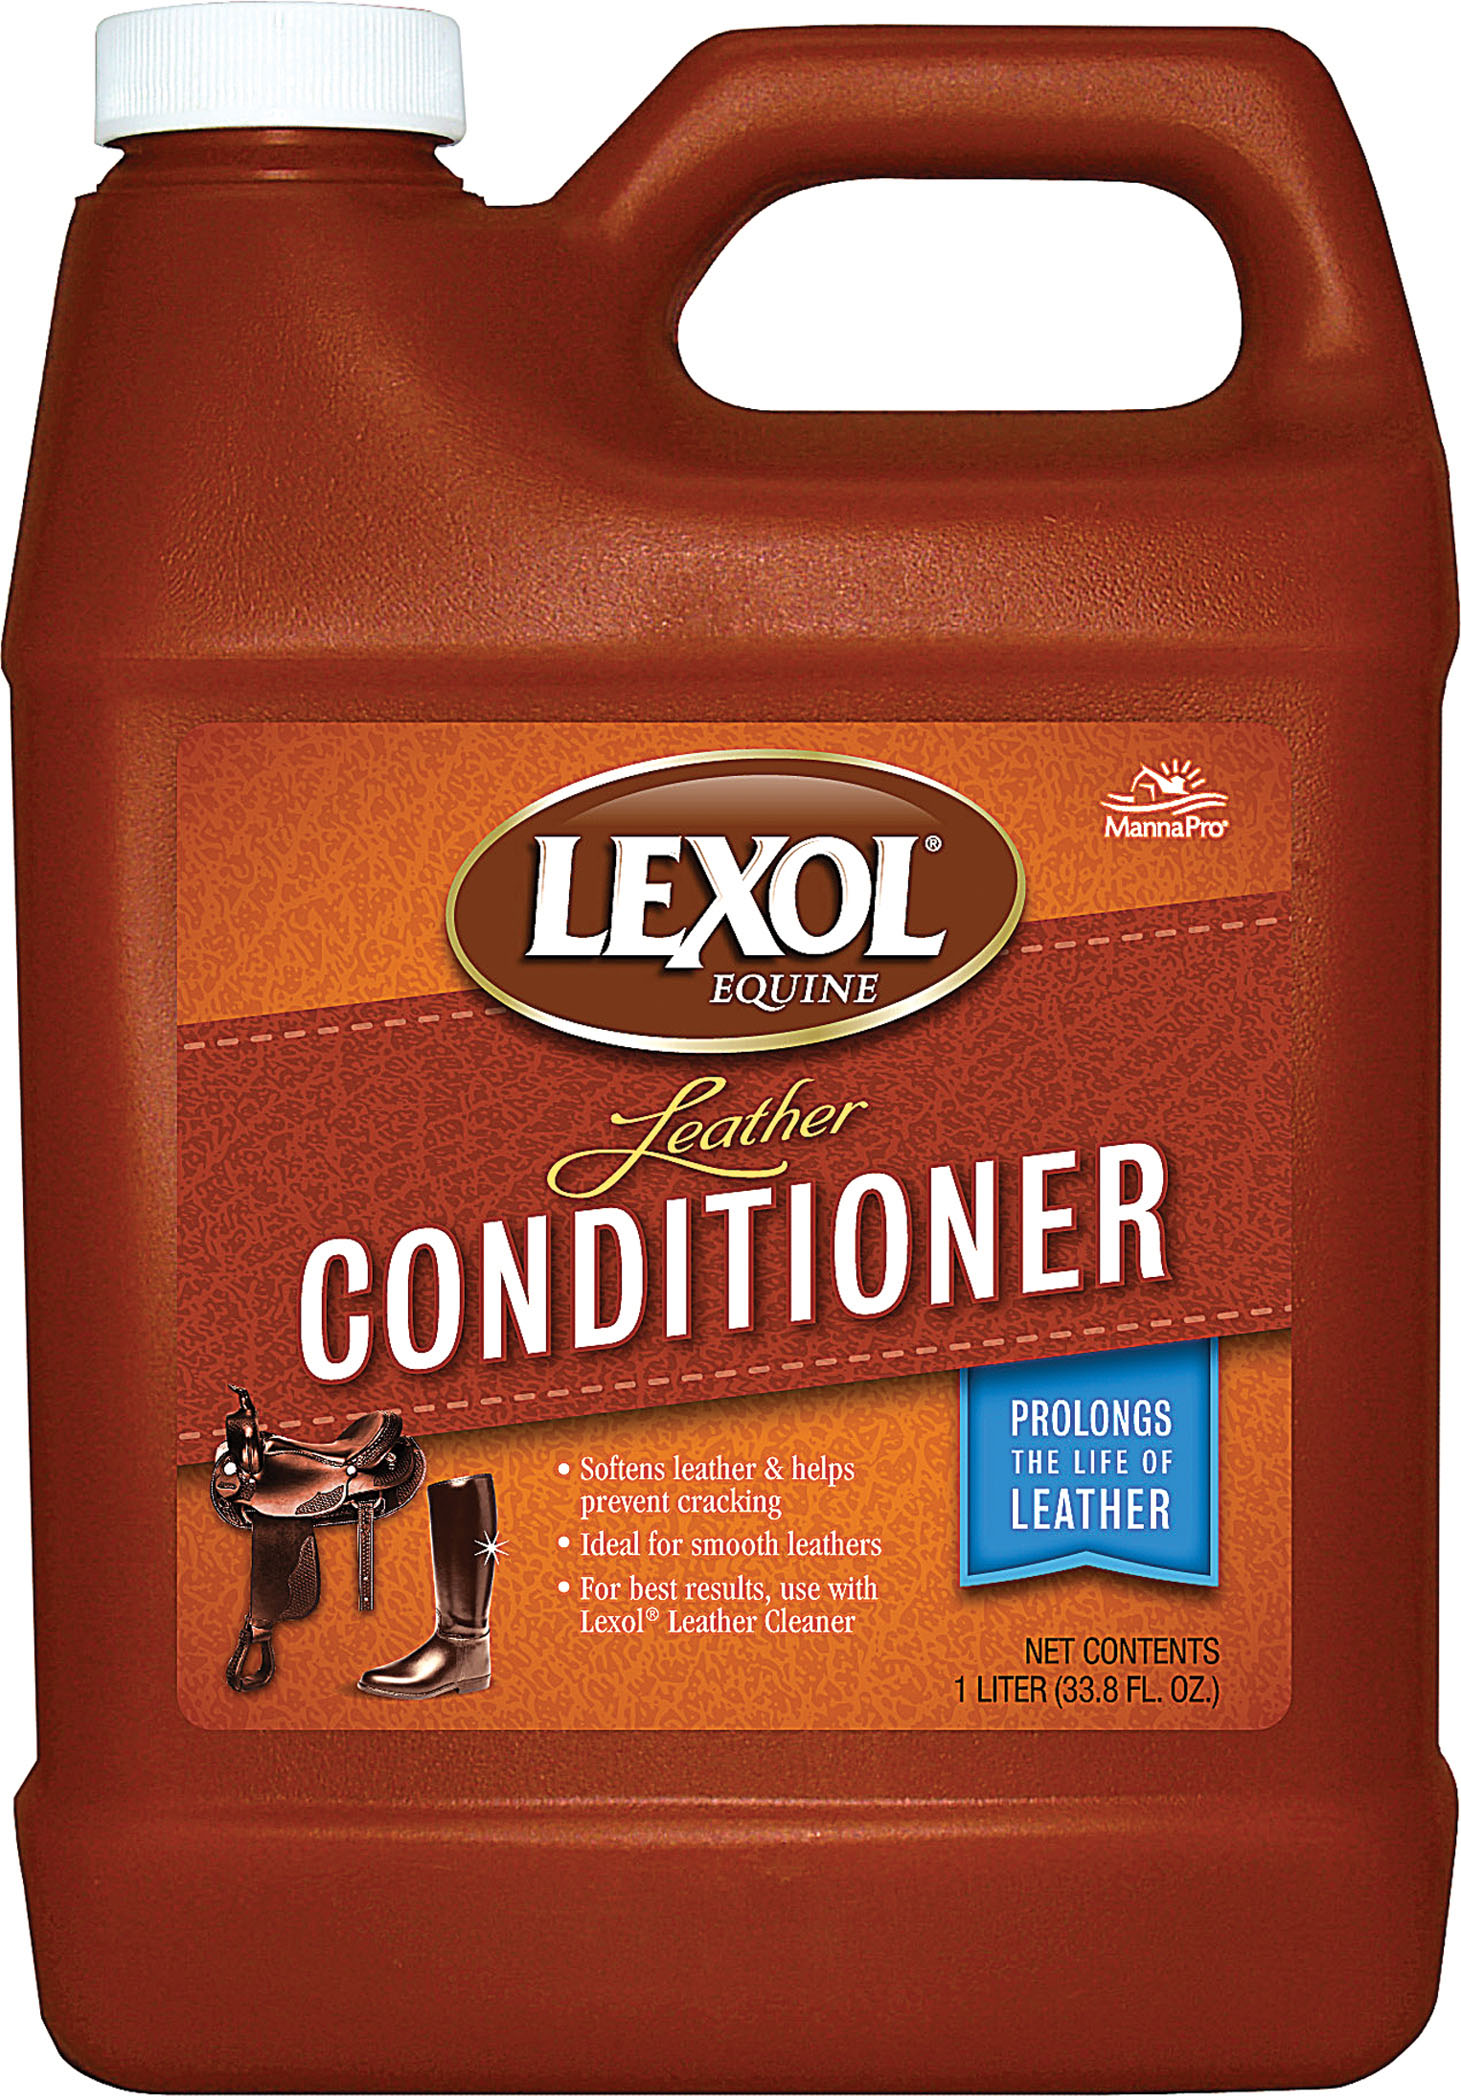 Manna Pro Lexol Leather Conditioner Lexol, 1-L